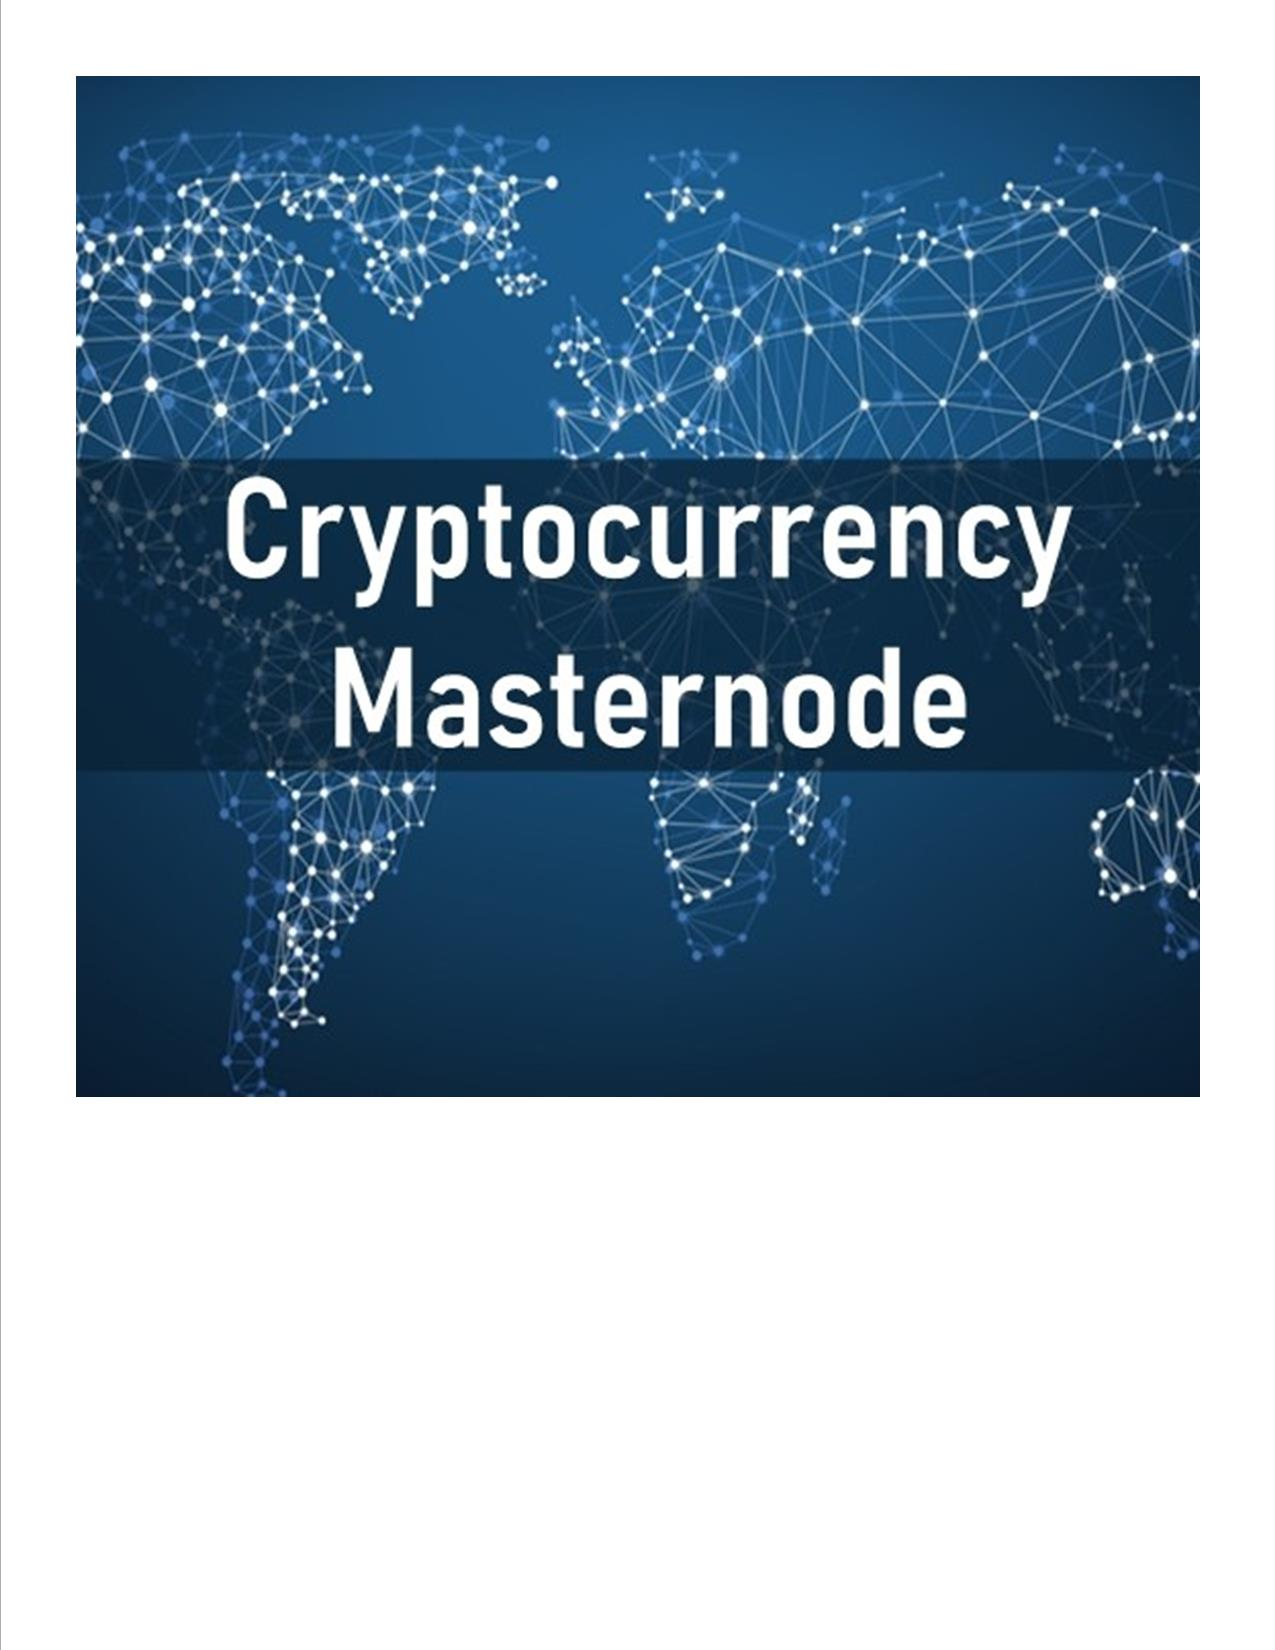 Domain Name MasterNodeico.com - Domain Name for Sale - Master Node ICO